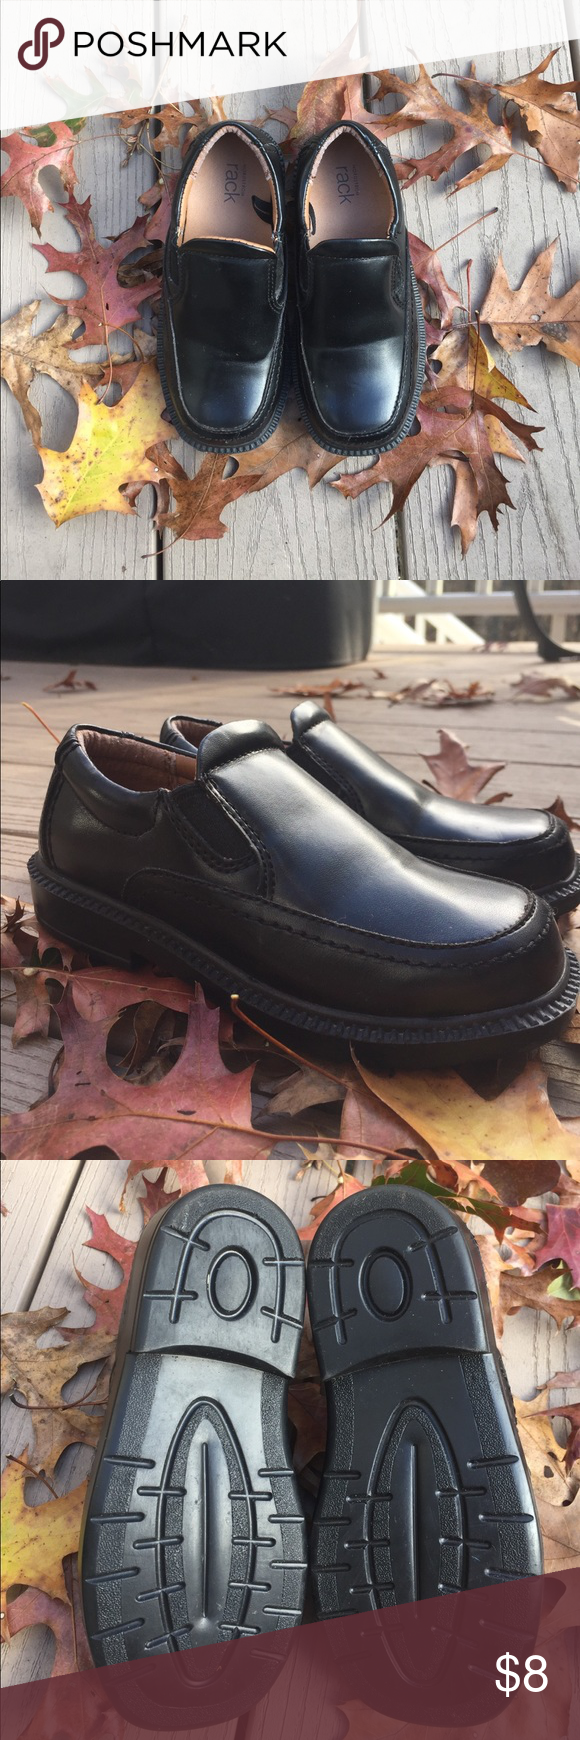 Nordstrom Boys Dress Shoes